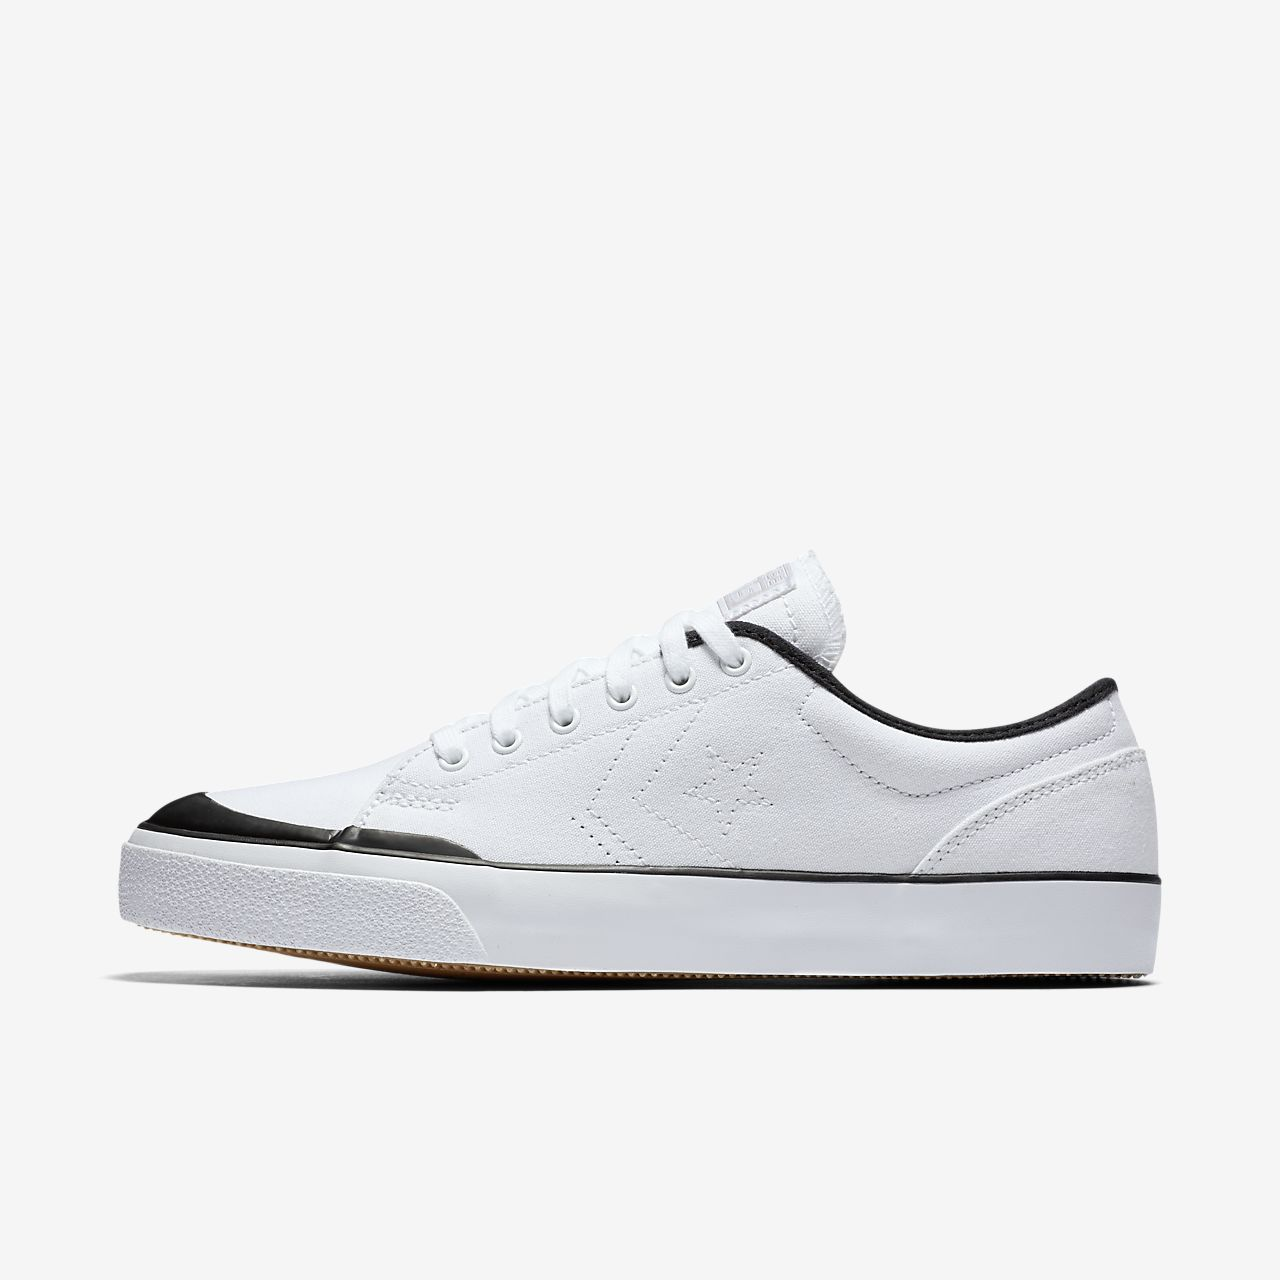 Converse CONS x Aaron Herrington Sumner Low Top Men's Skateboarding Shoe